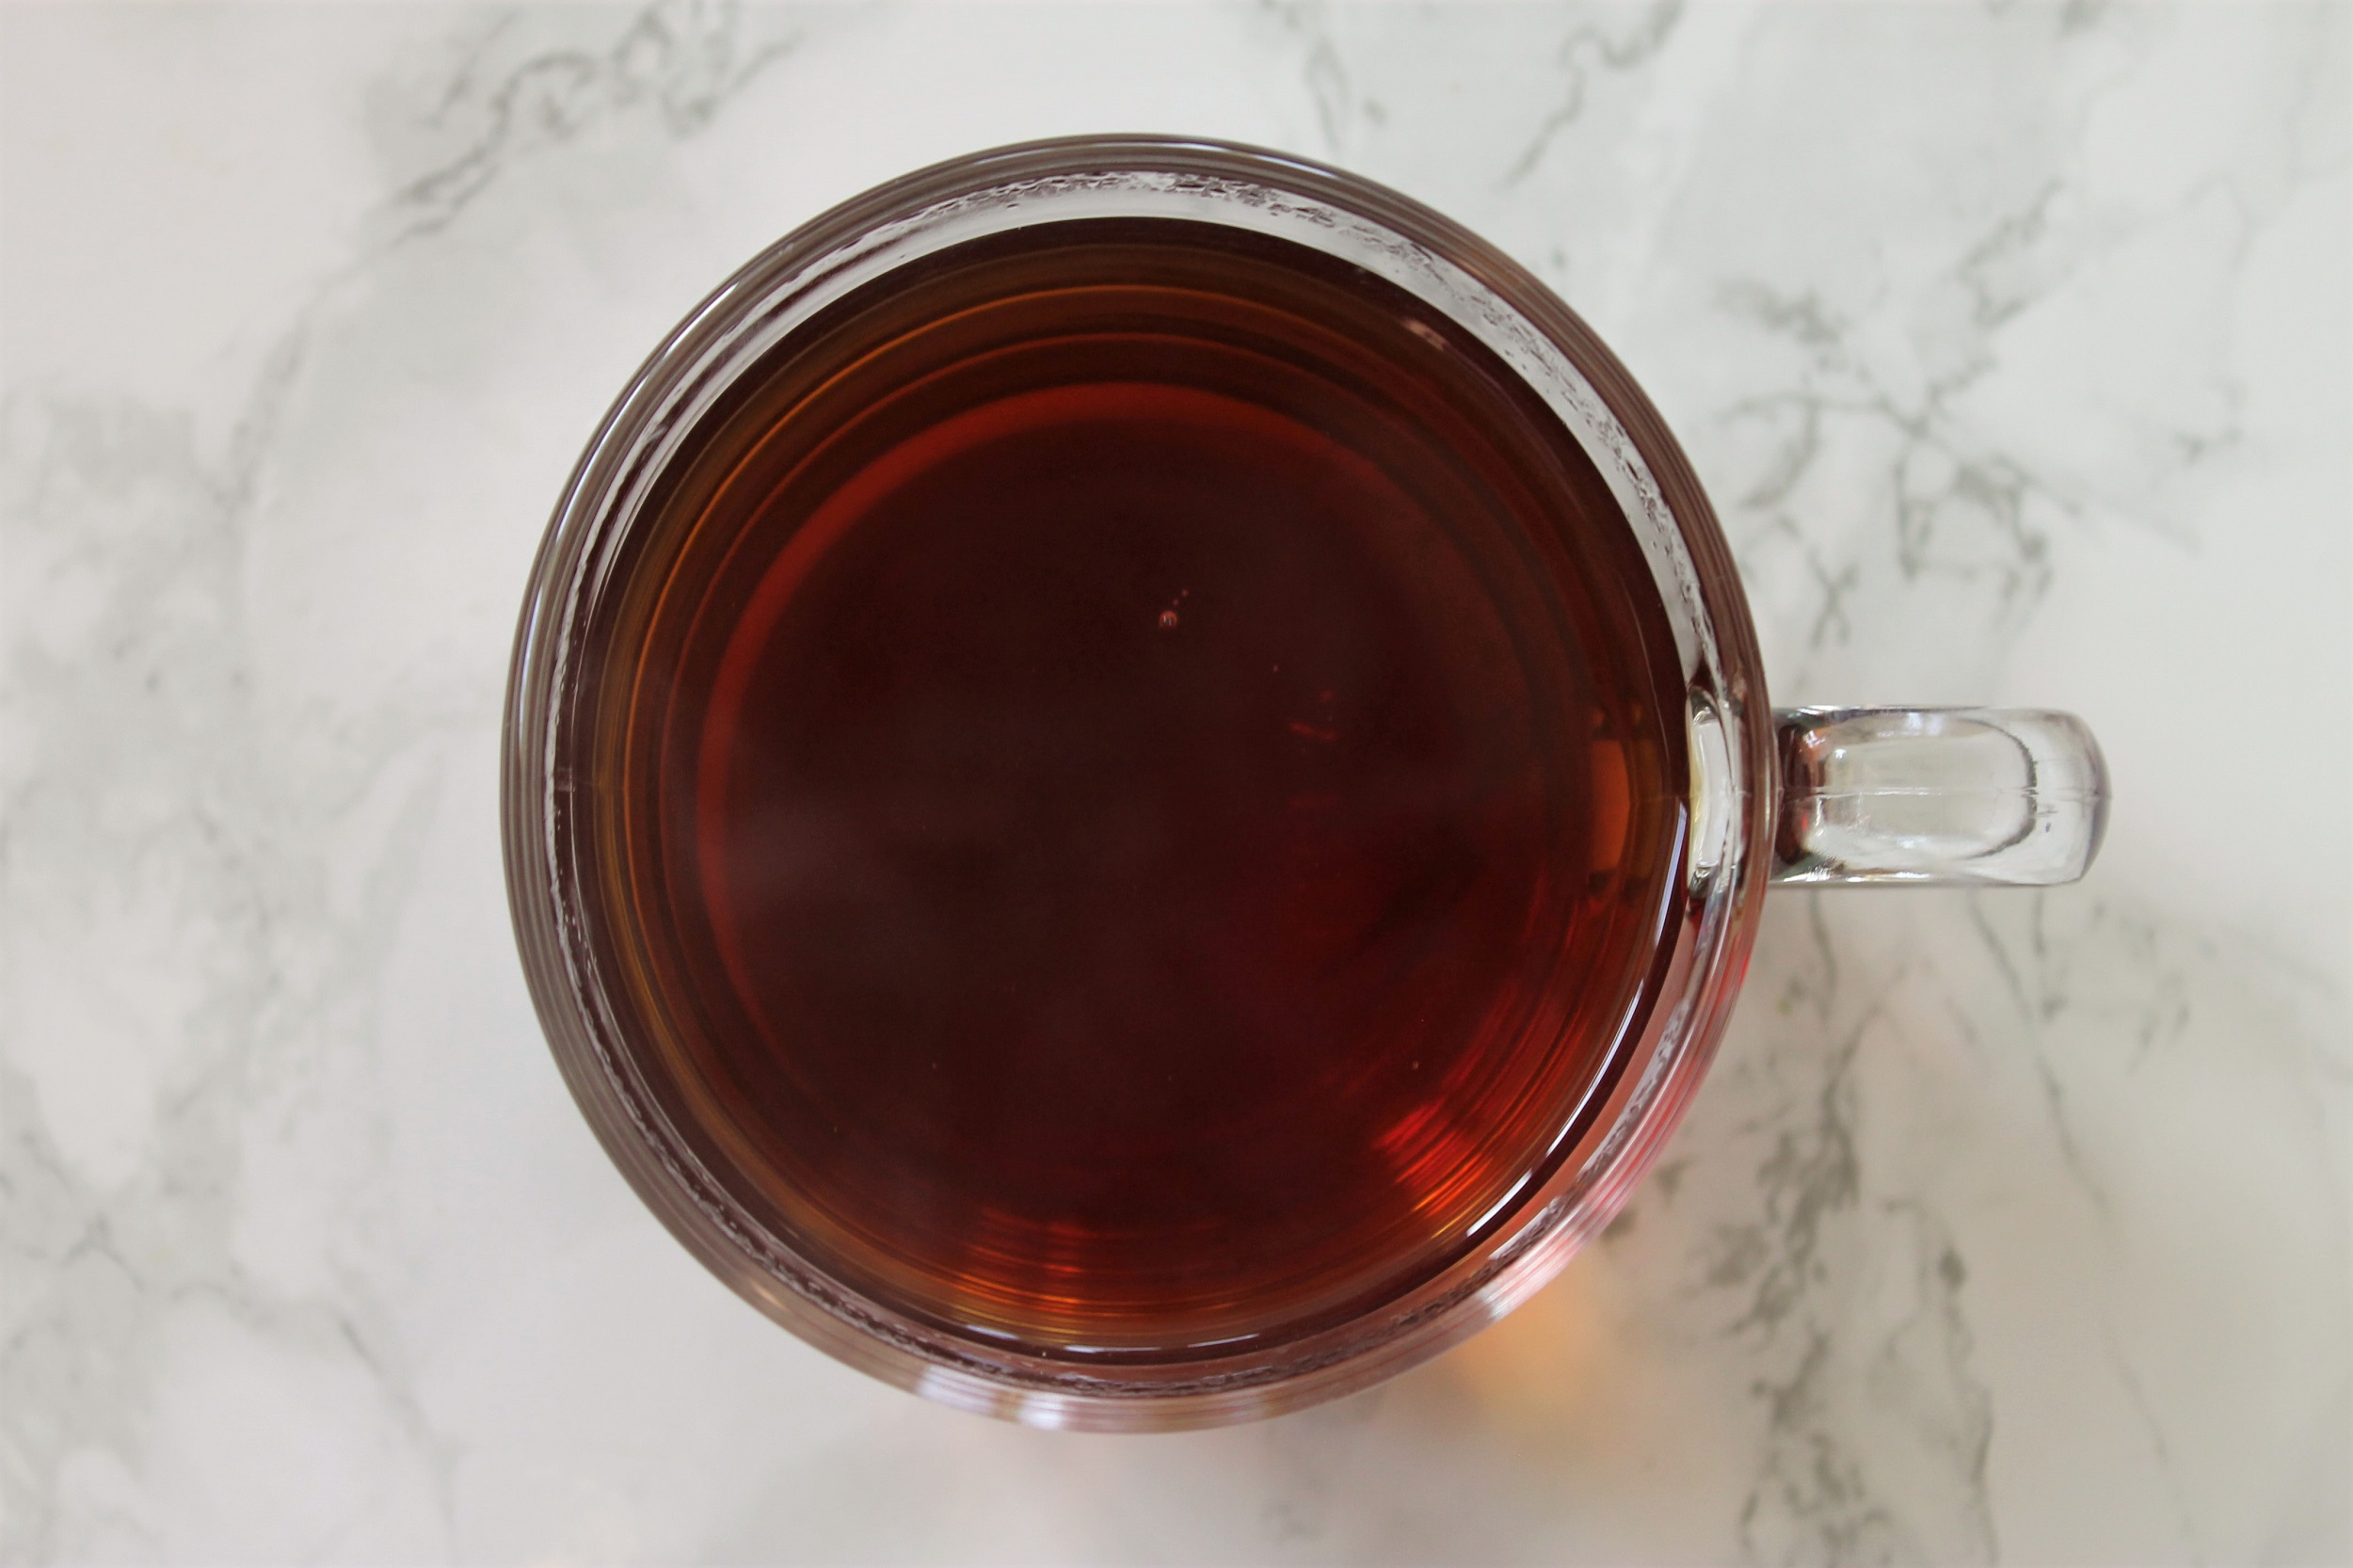 amber black tea in glass teacup